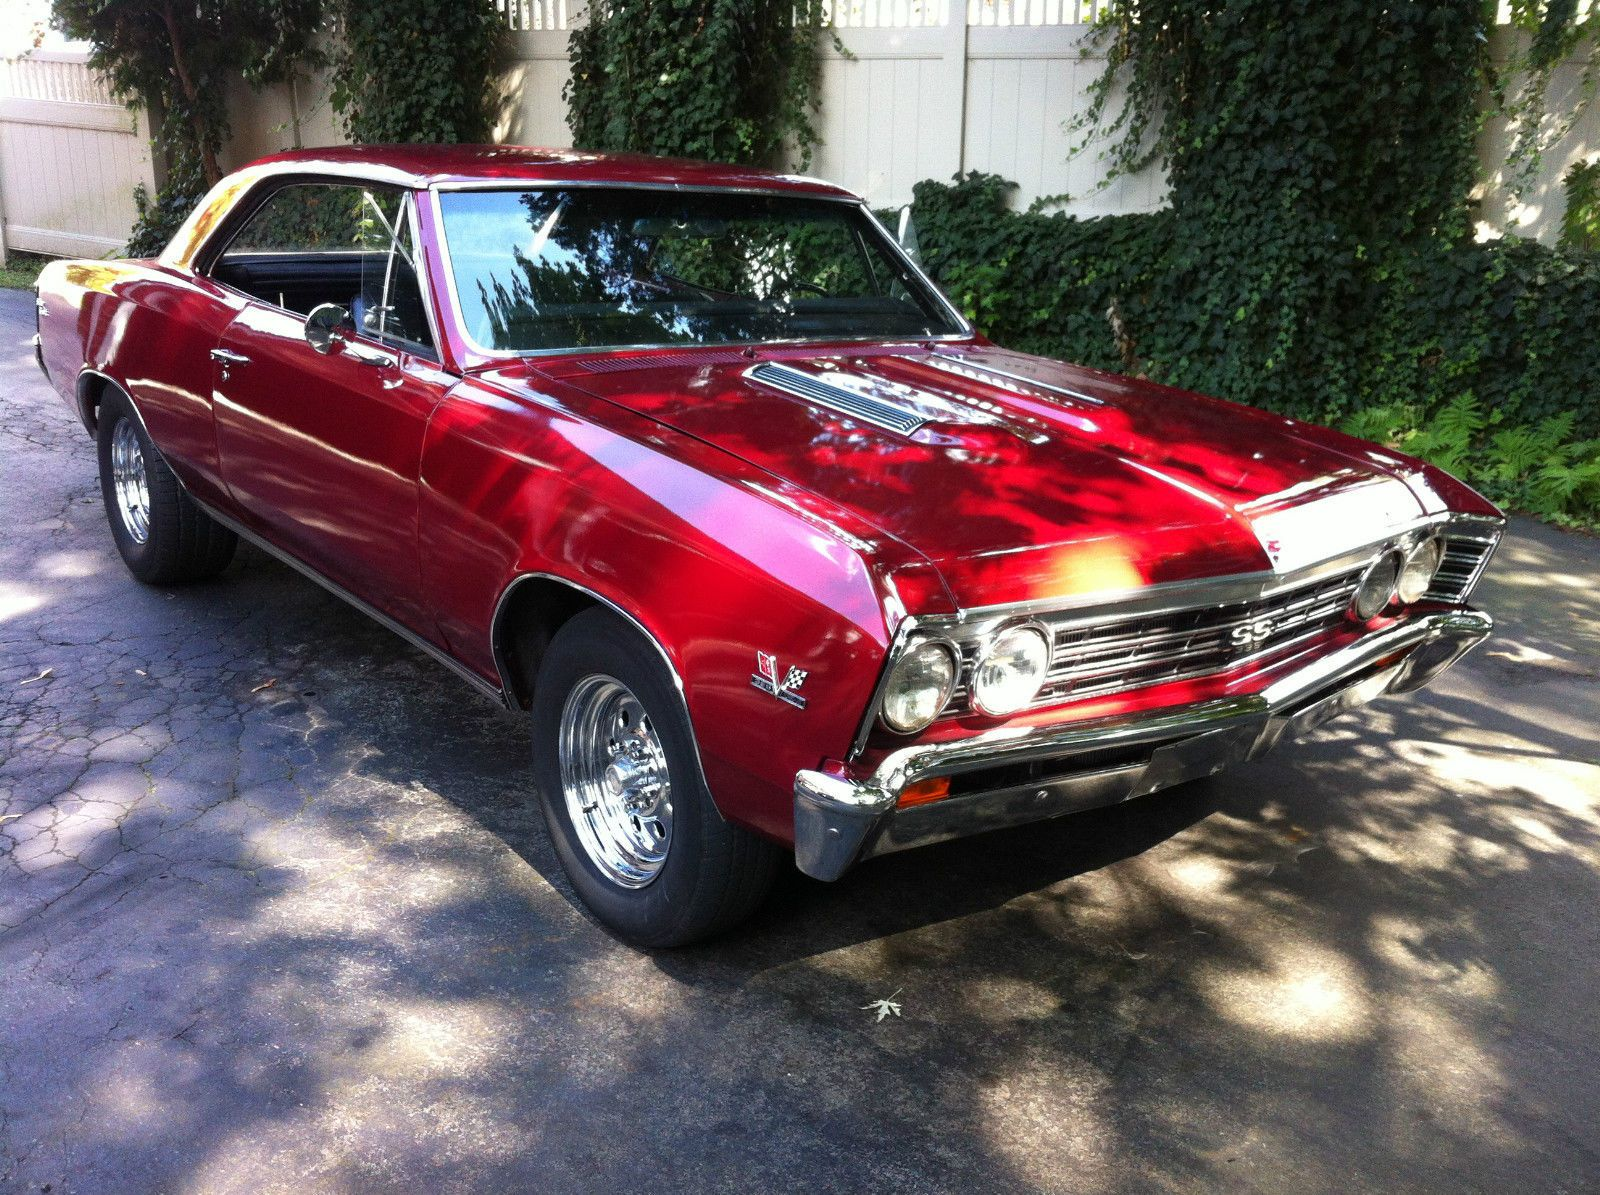 1975 chevrolet chevelle laguna s 3 project cars for sale pinterest chevrolet chevelle chevrolet and cars